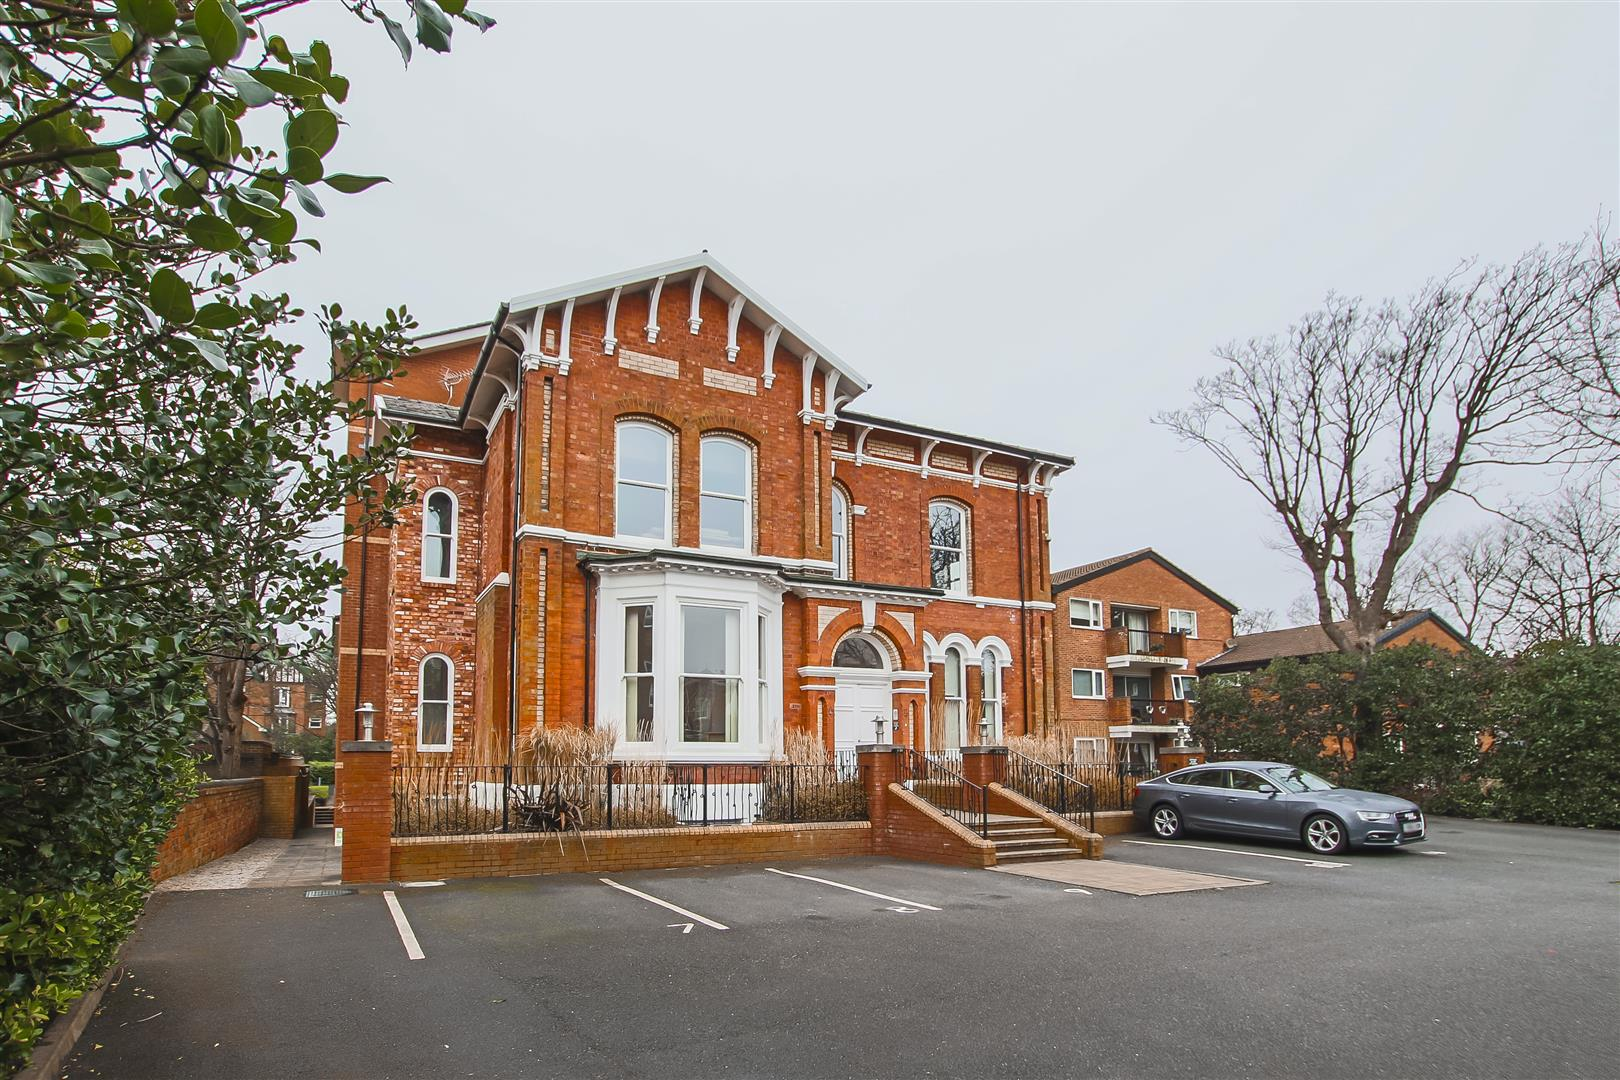 2 Bedroom Apartment For Sale - Front External